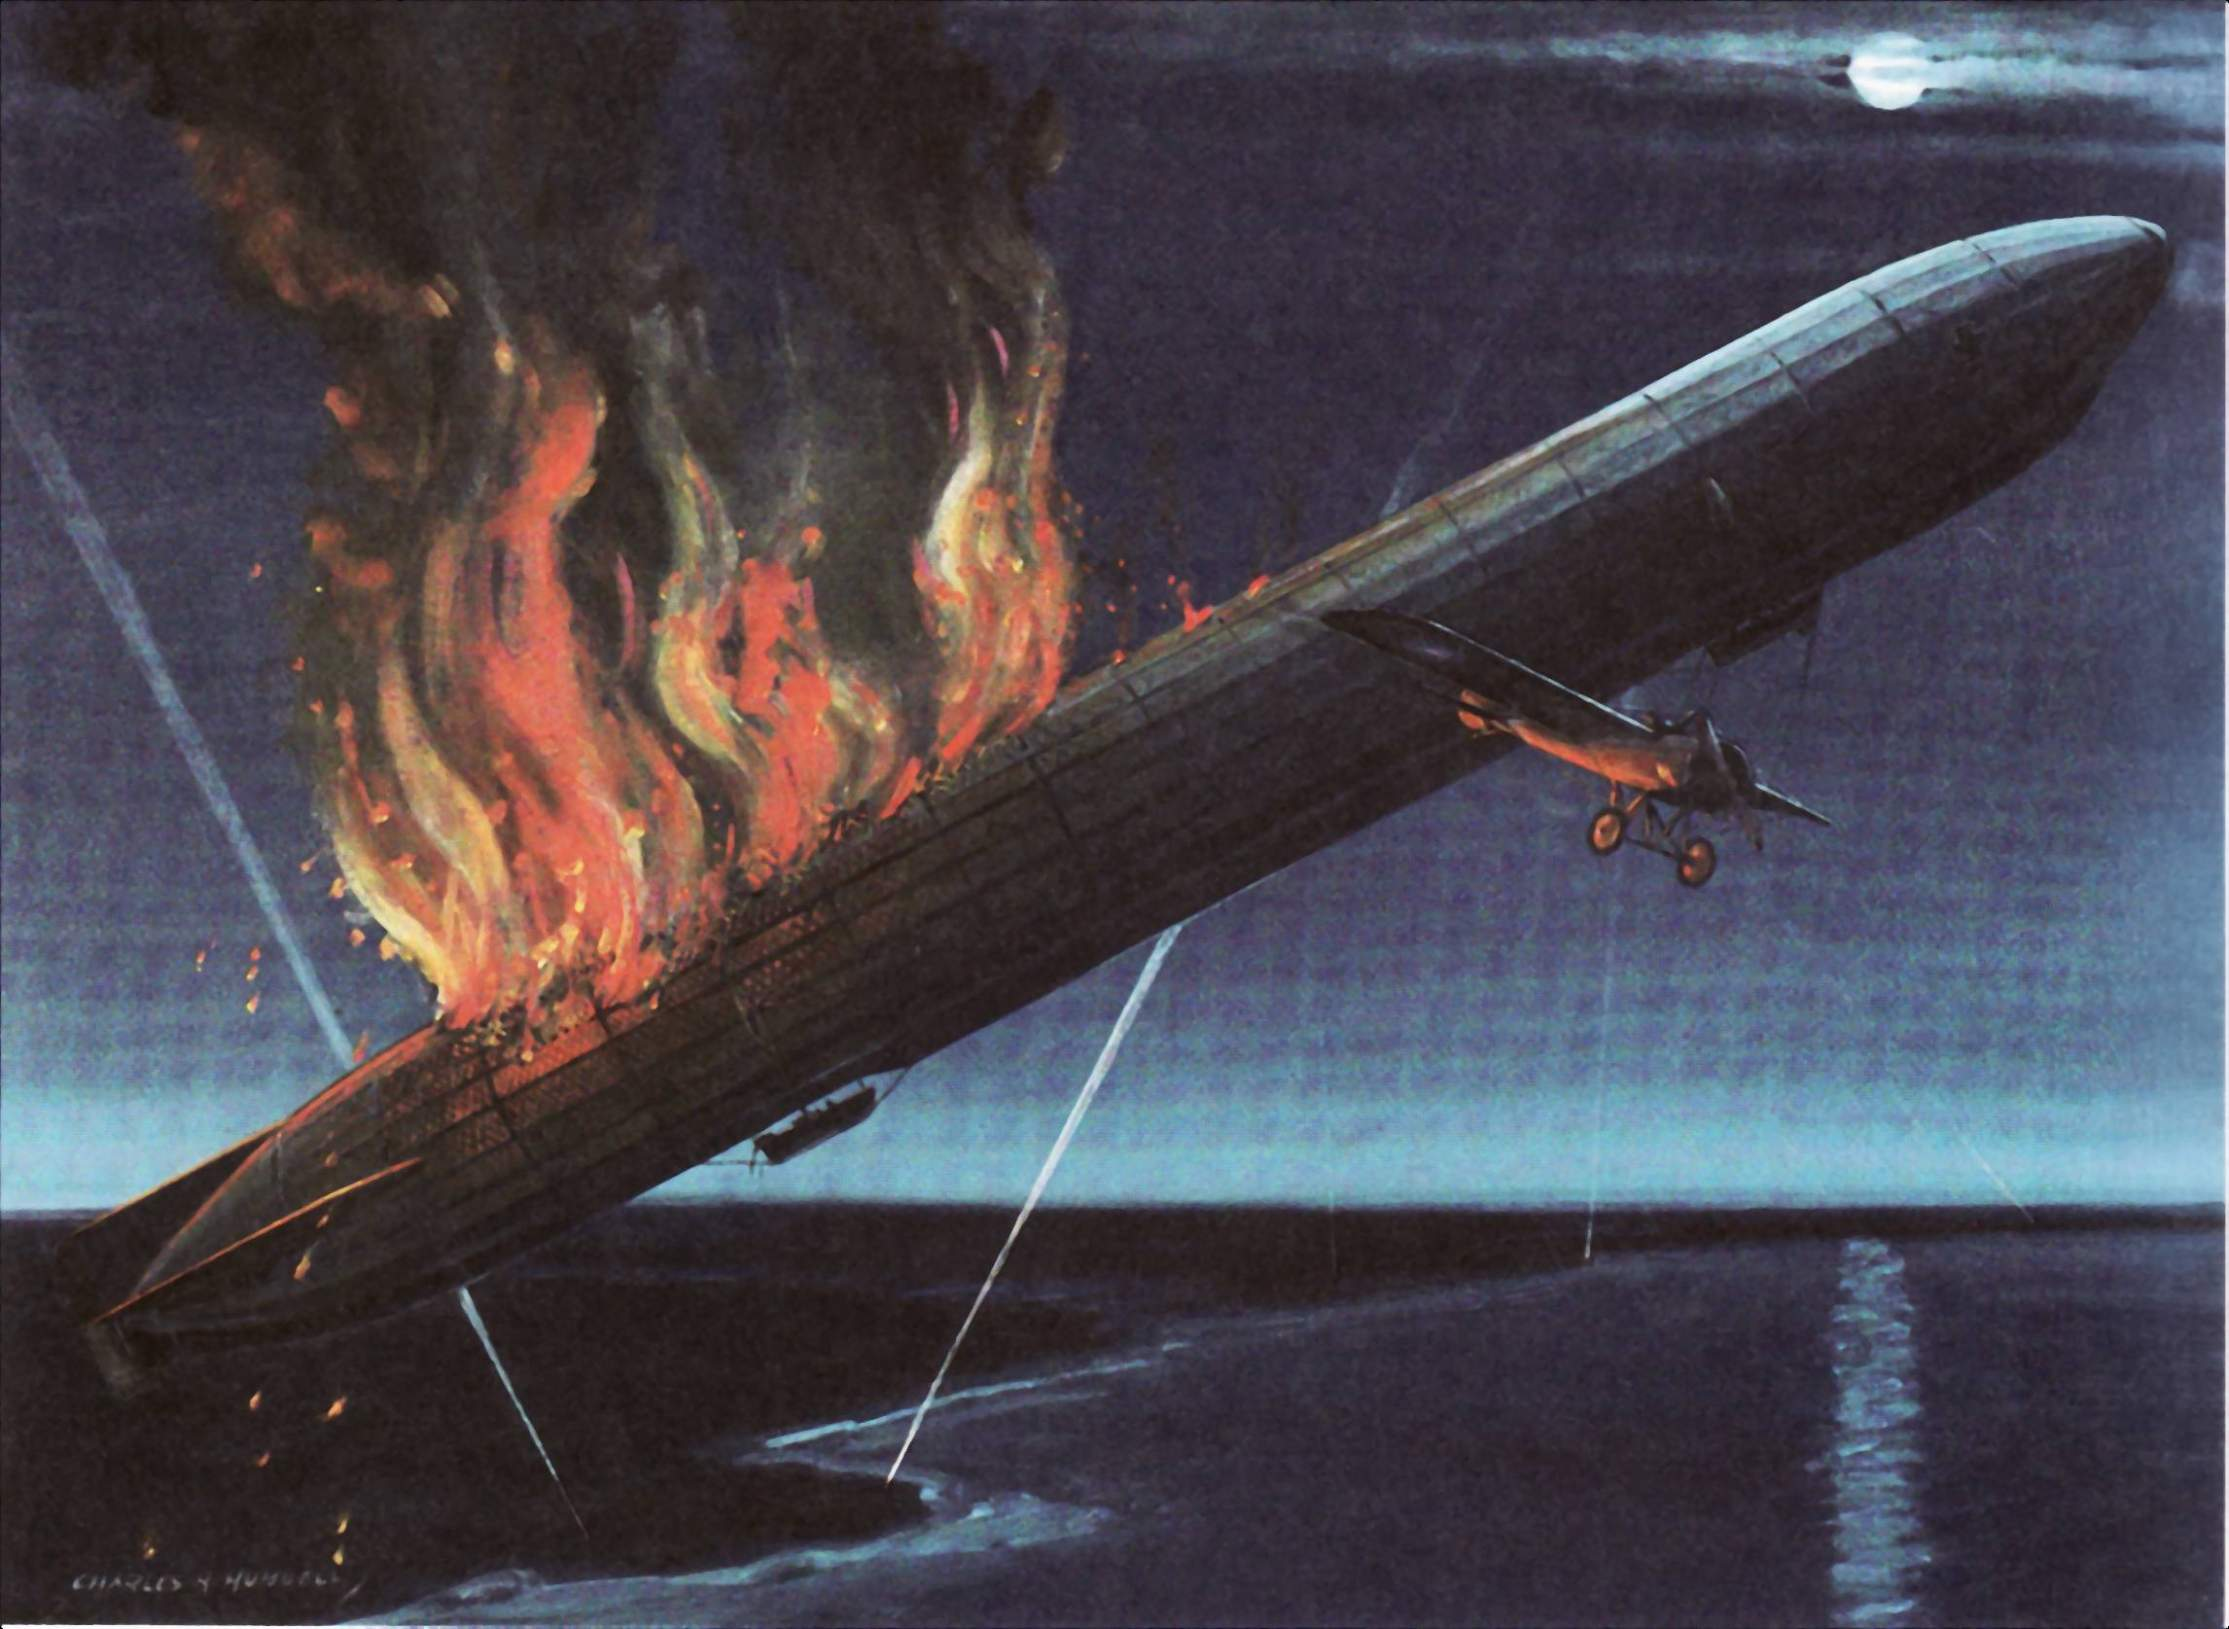 ZEPPELINS: HIGH ALTITUDE WARSHIPS. The Height Climbers